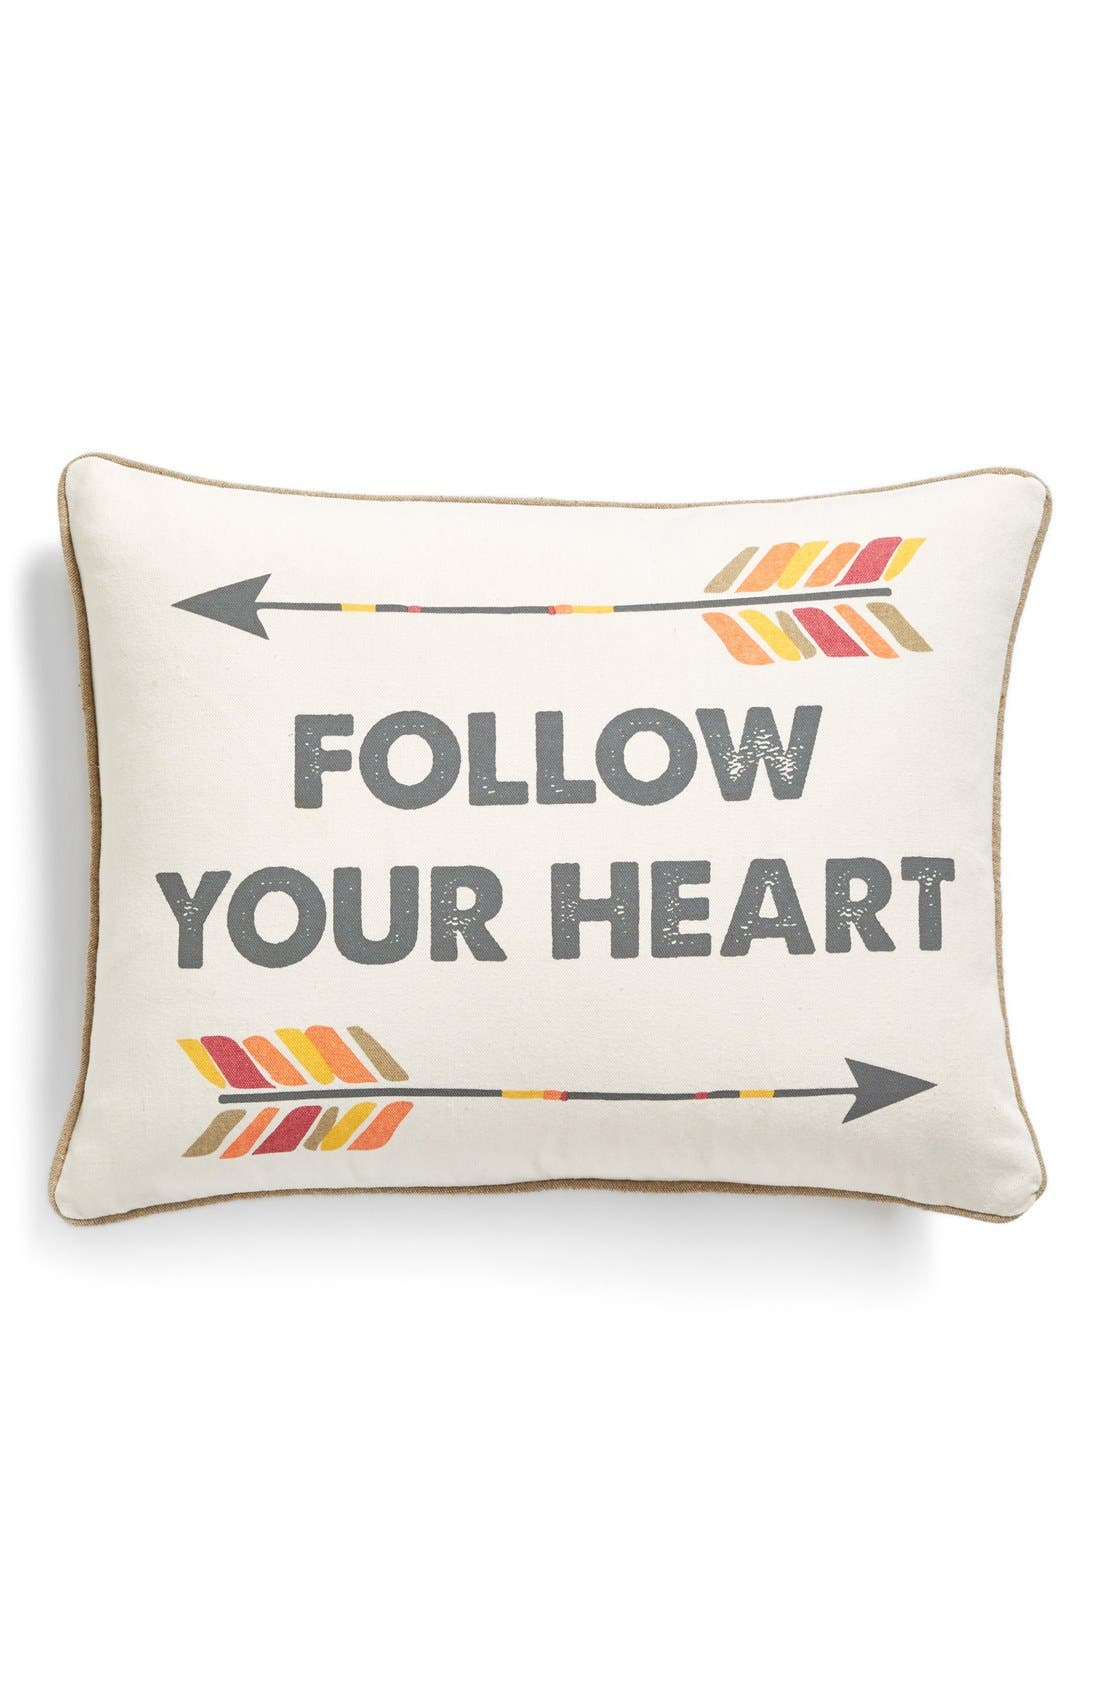 Alternate Image 1 Selected - Levtex 'Follow Your Heart' Pillow